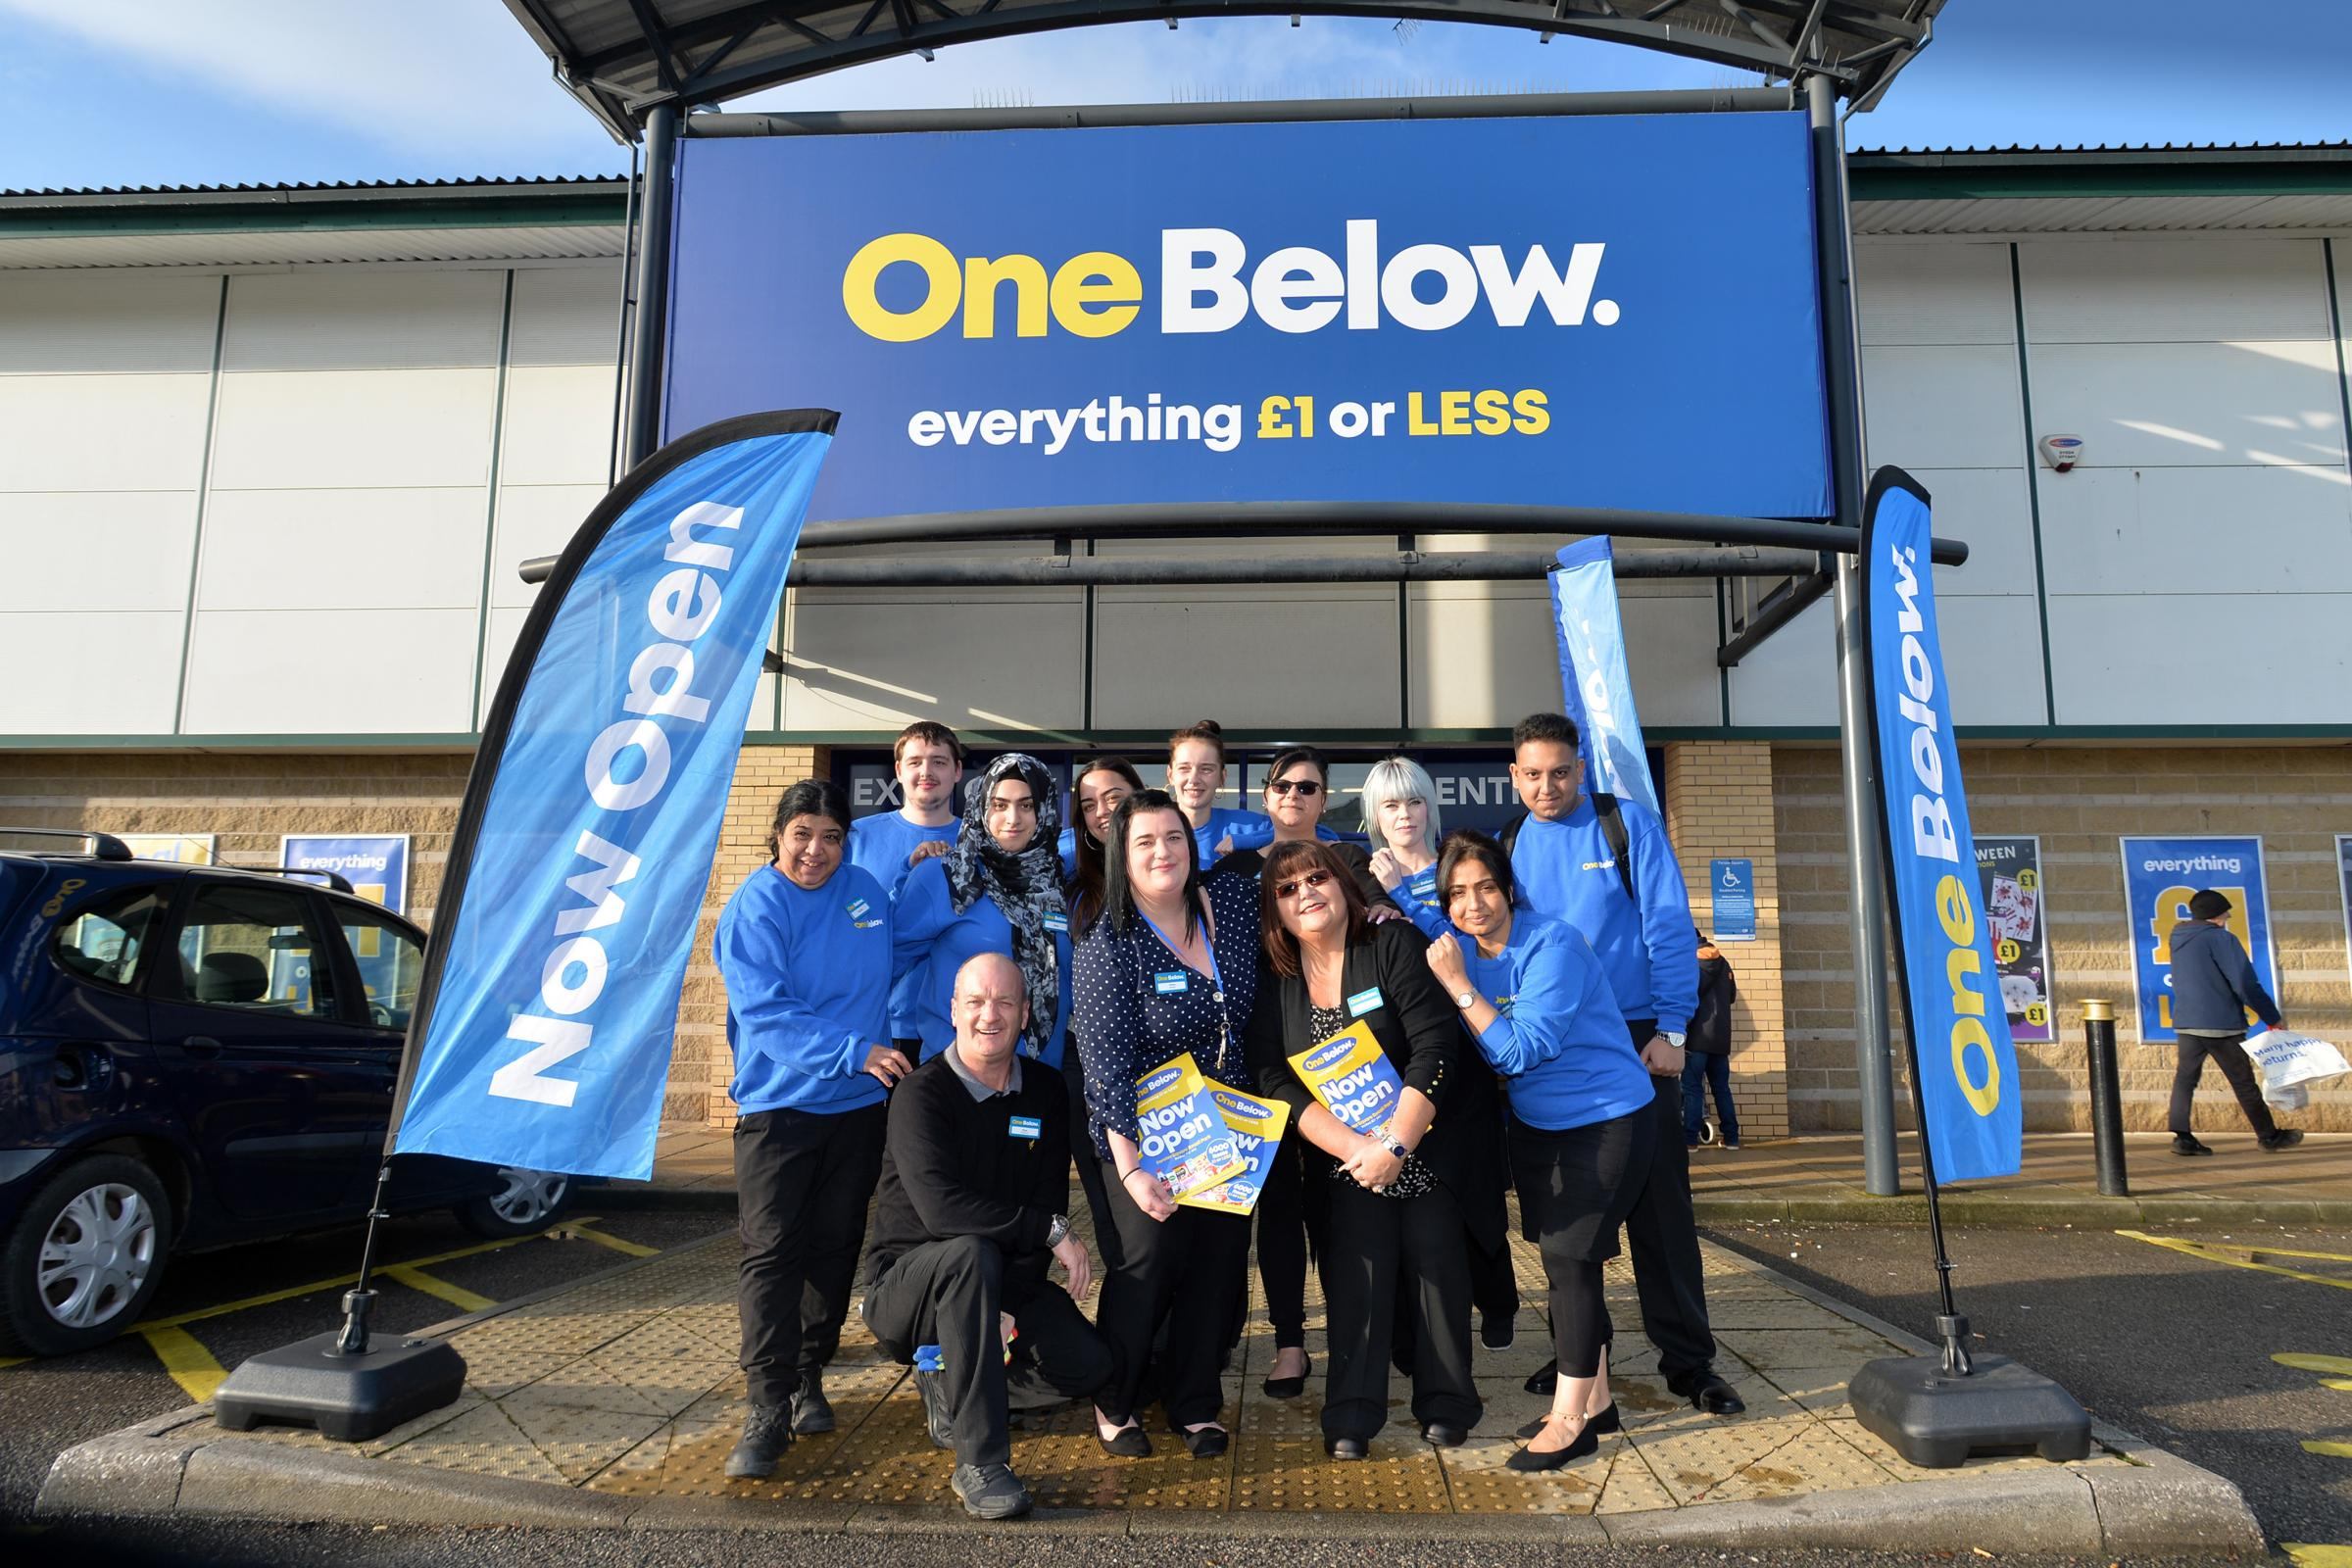 Discount retailer announces second Warrington store will open later this week